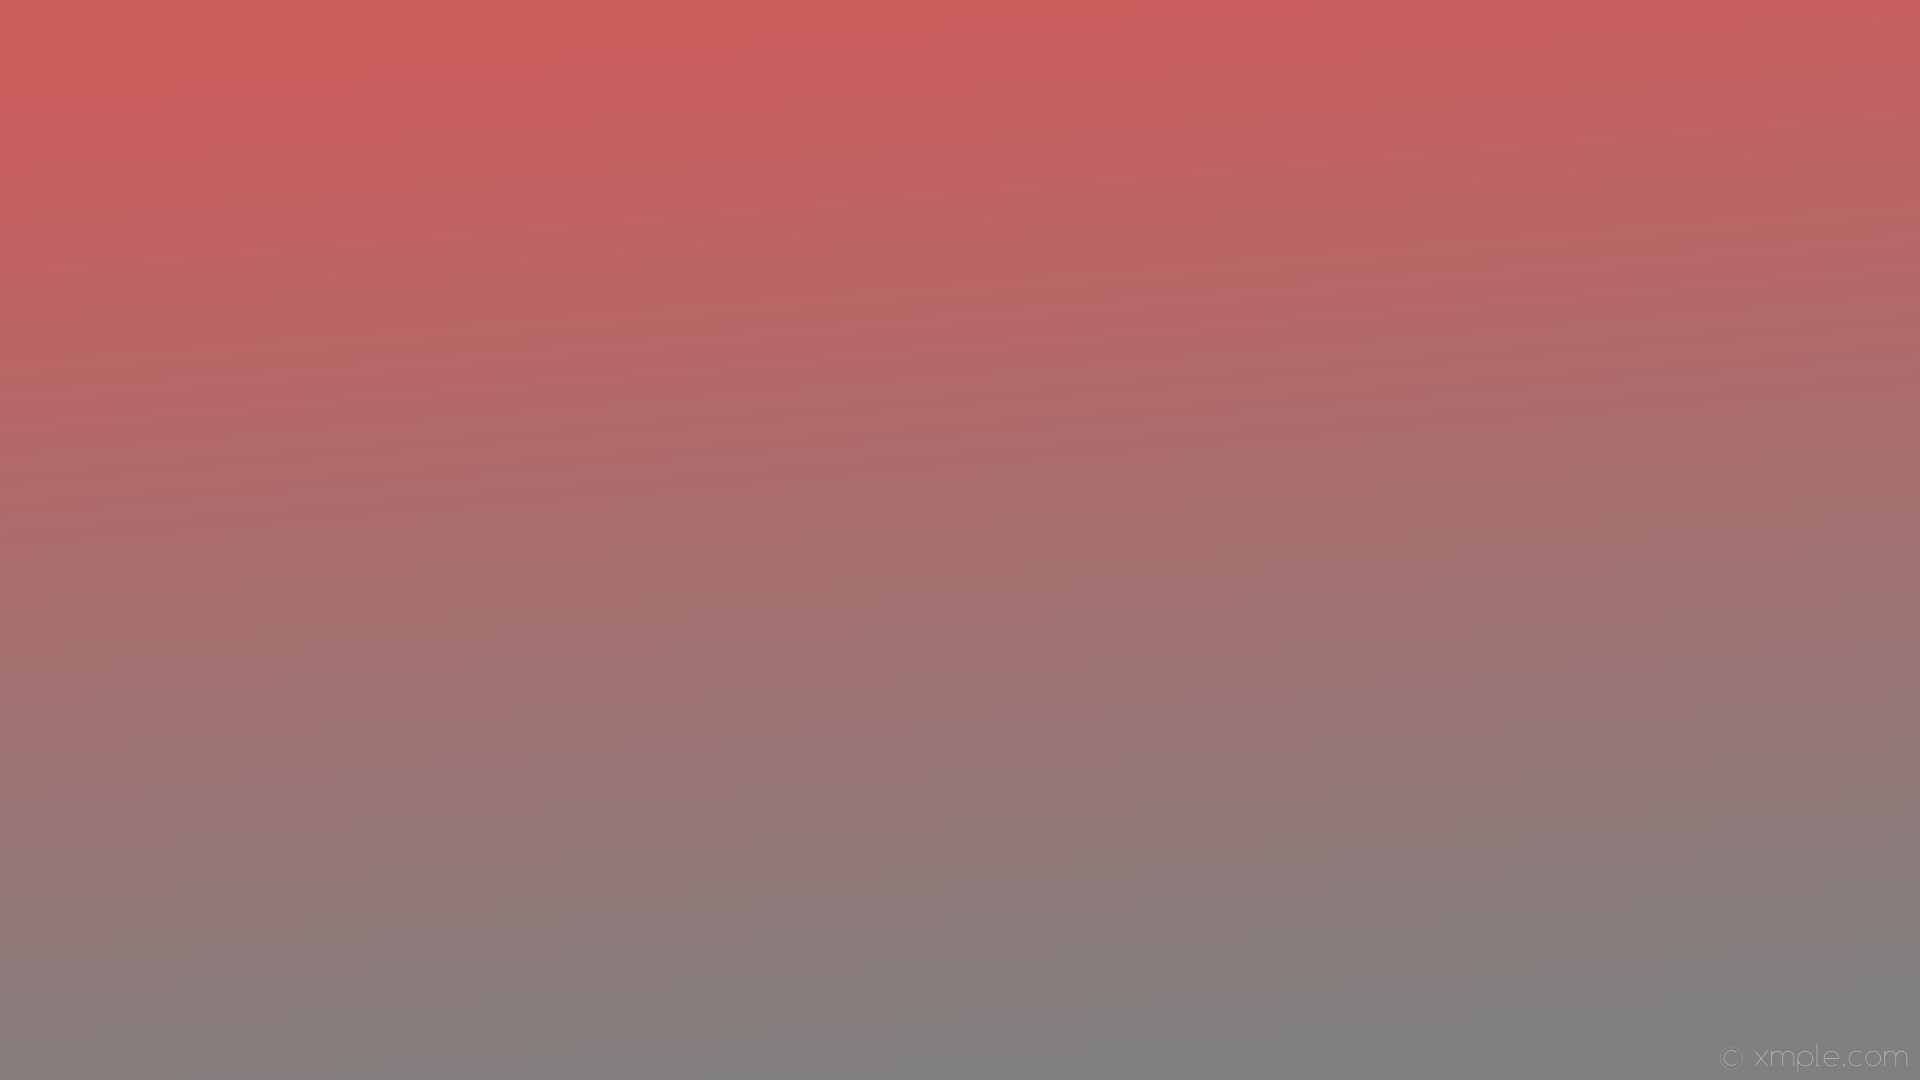 wallpaper grey red gradient linear gray indian red #808080 #cd5c5c 285°